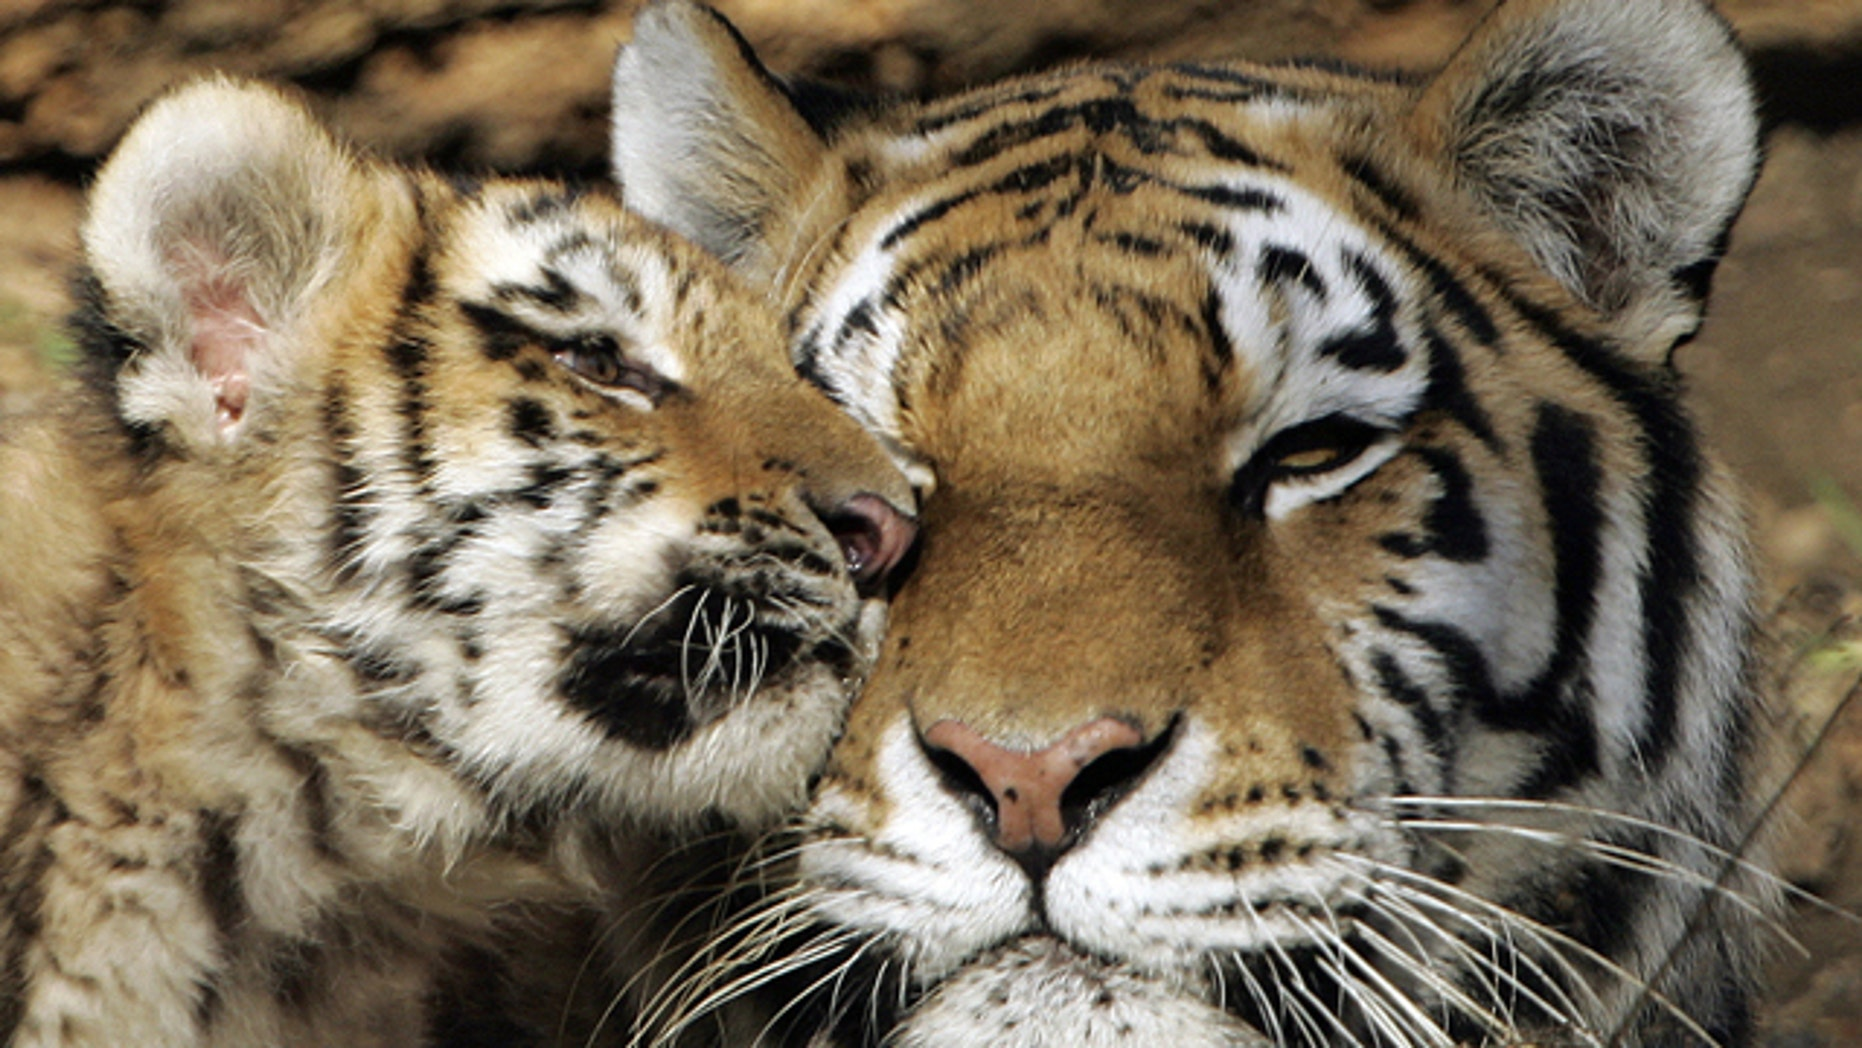 A male Siberian Tiger cub nuzzles up to his mother in the exhibition area at the Pittsburgh Zoo and Aquarium in 2006.